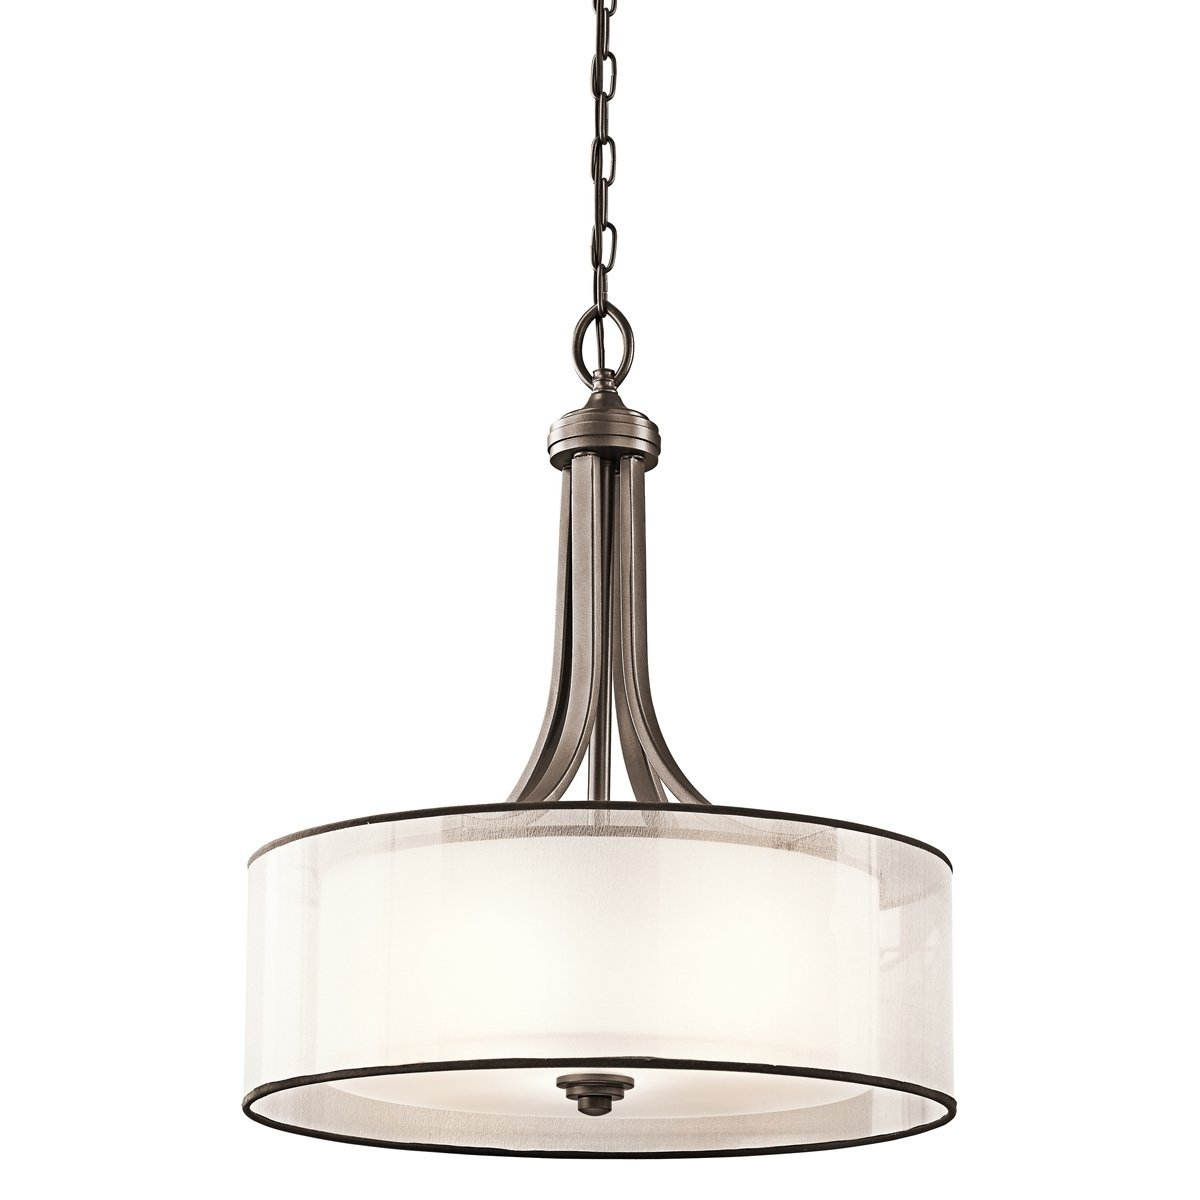 Kichler 42385Miz Four Light Pendant – Ceiling Pendant Fixtures Pertaining To Most Current Inverted Pendant Chandeliers (View 4 of 15)